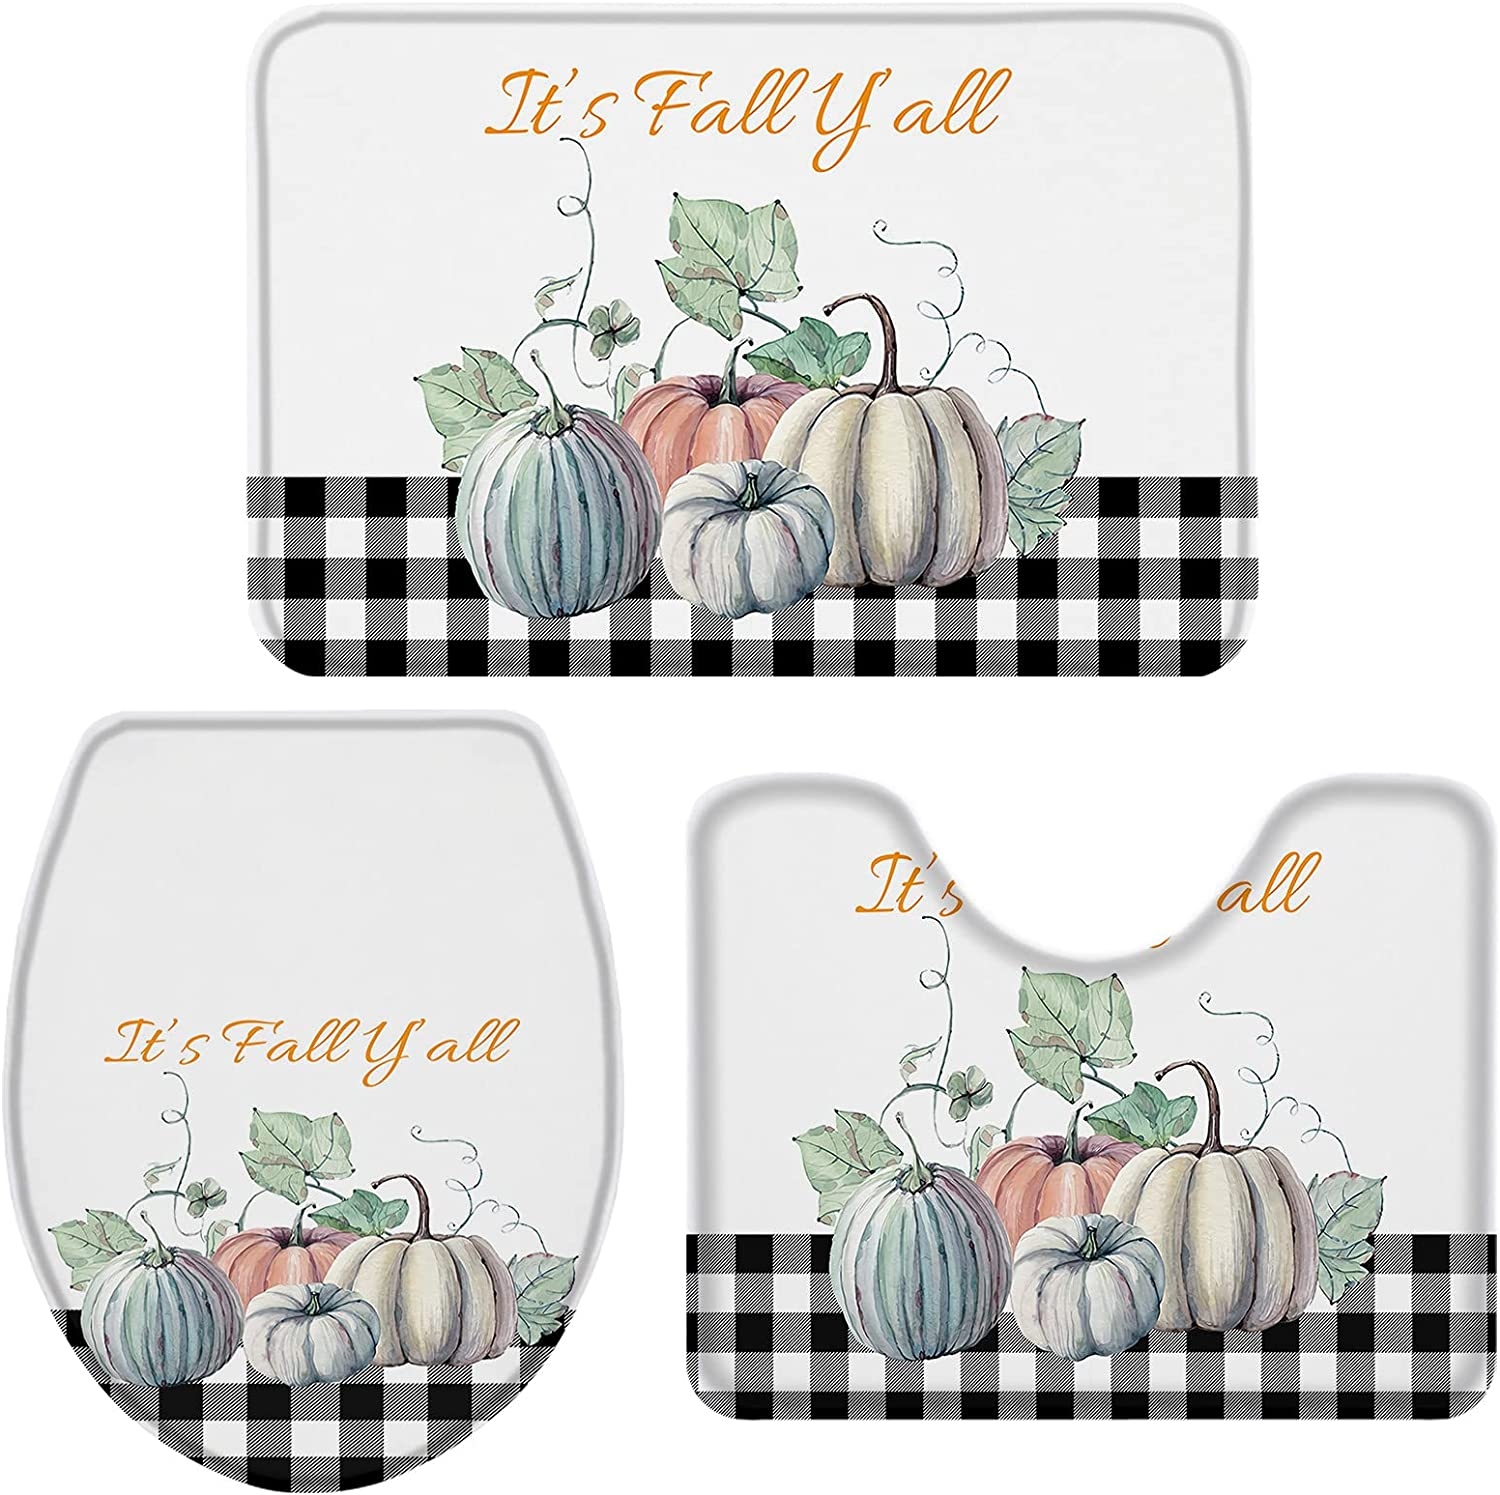 ZOE GARDEN Bathroom Cheap mail order specialty store Rugs and Mats Autumn Thanks Small gift Sets Fall